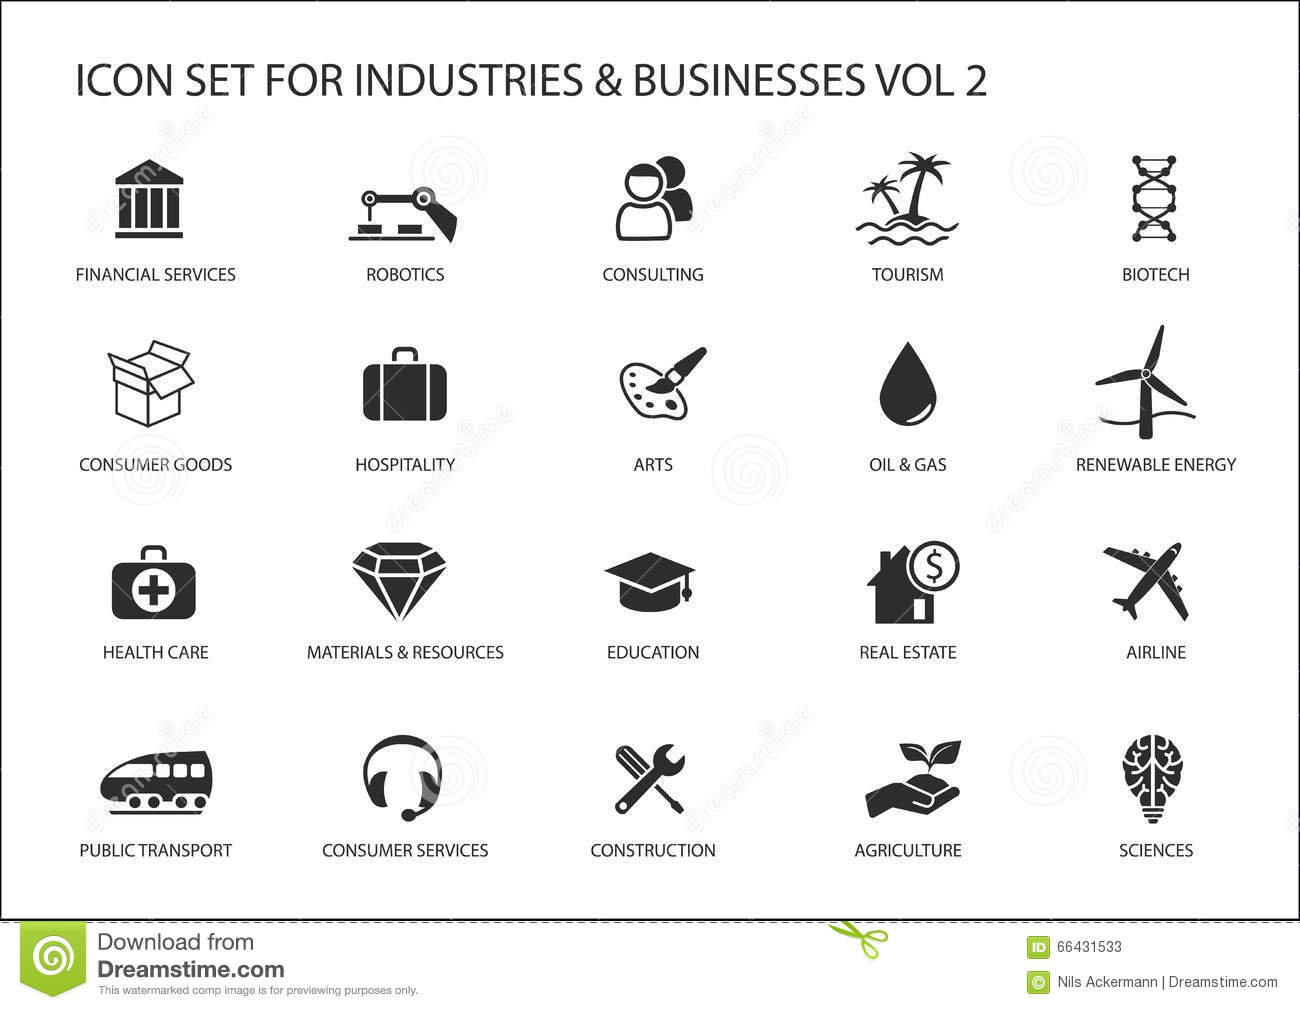 analyzing tourism hospitality in business Tourism and hotel industry in indonesia segmented by business tourism, eco tourism, adventure tourism, medical tourism, pilgrimage tourism and events  home industry reports hospitality & tourism market entry - tourism  market entry - tourism and hotel industry in indonesia: analysis of growth, trends and progress (2015-2020.